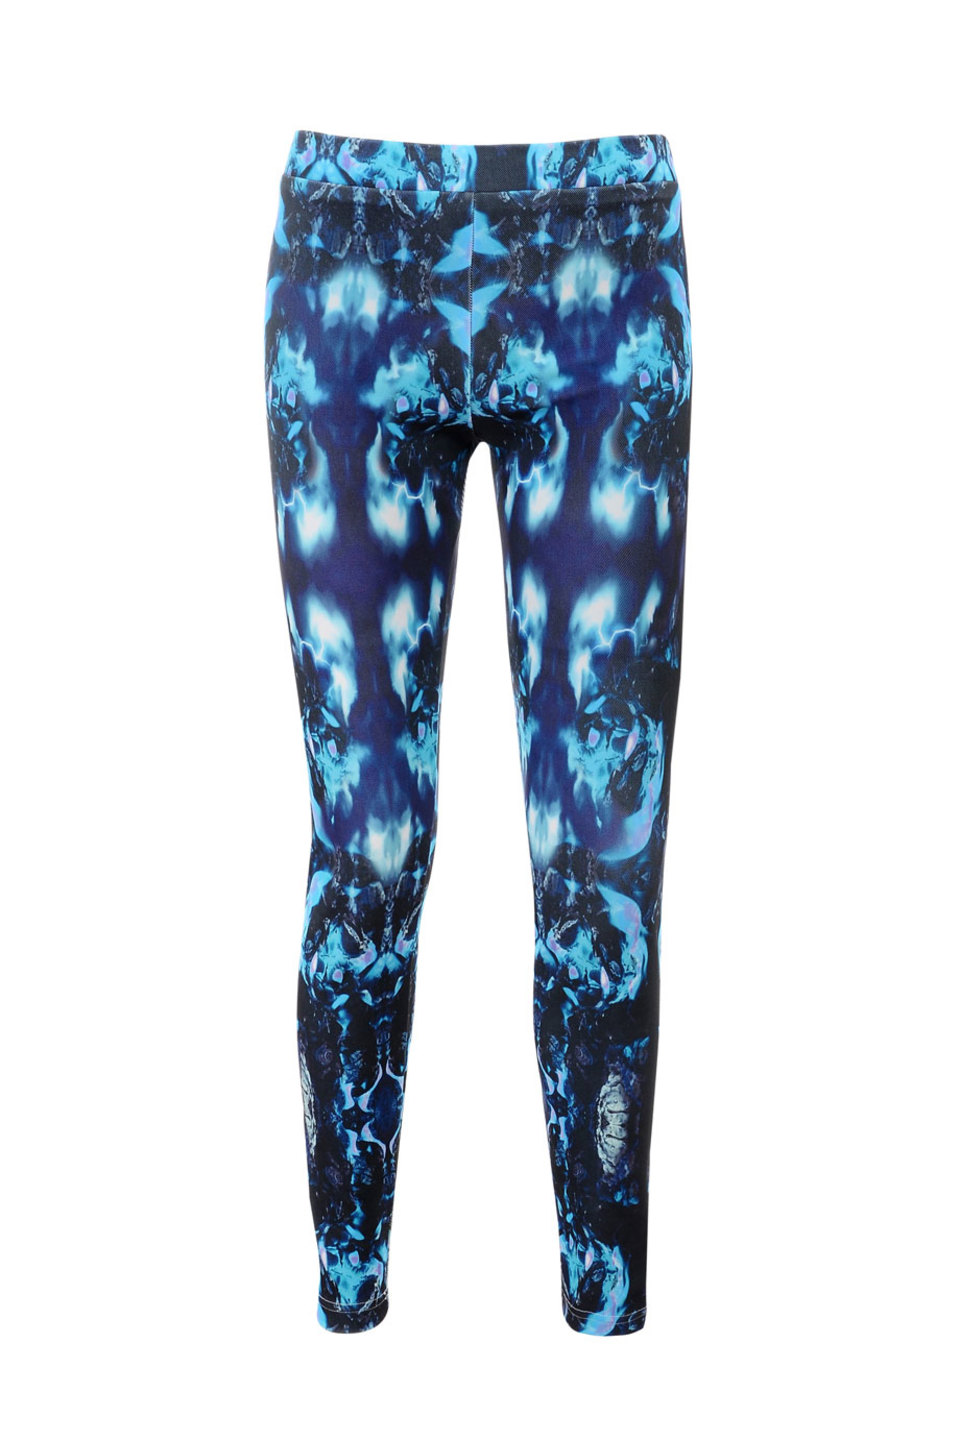 Shay Blue Graphic Print Stretch Twill Leggings